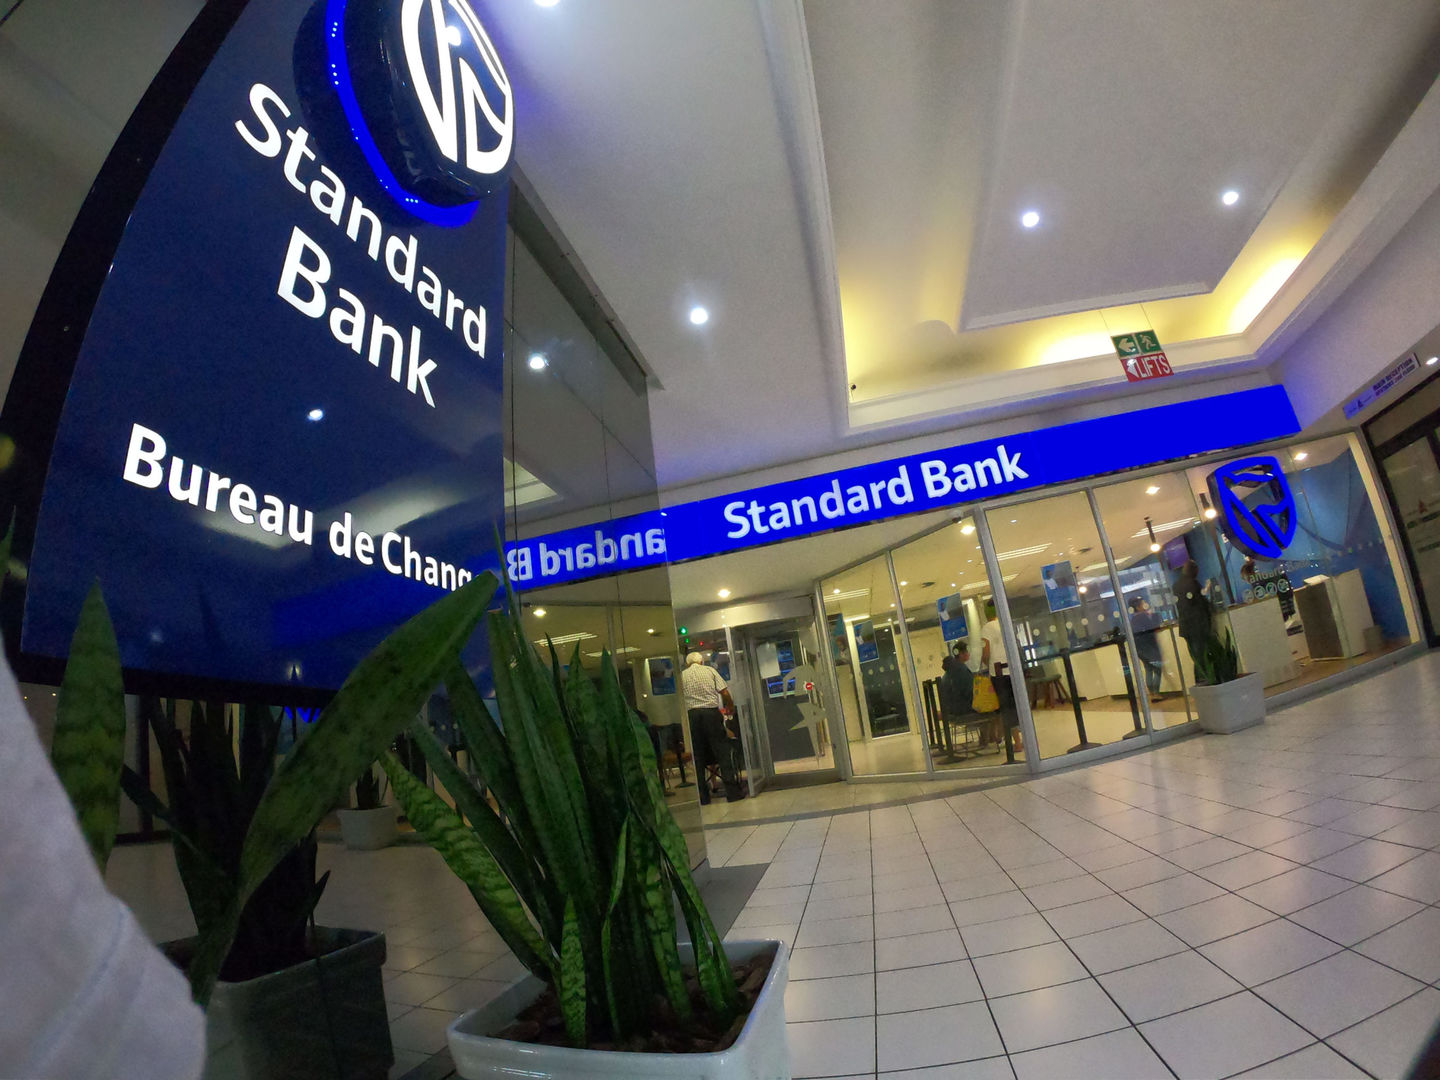 Standard Bank of South Africa Cellphone banking: How to Check account balances, Buy airtime, transfer money and paybill with USSD codes - Enterprise Times